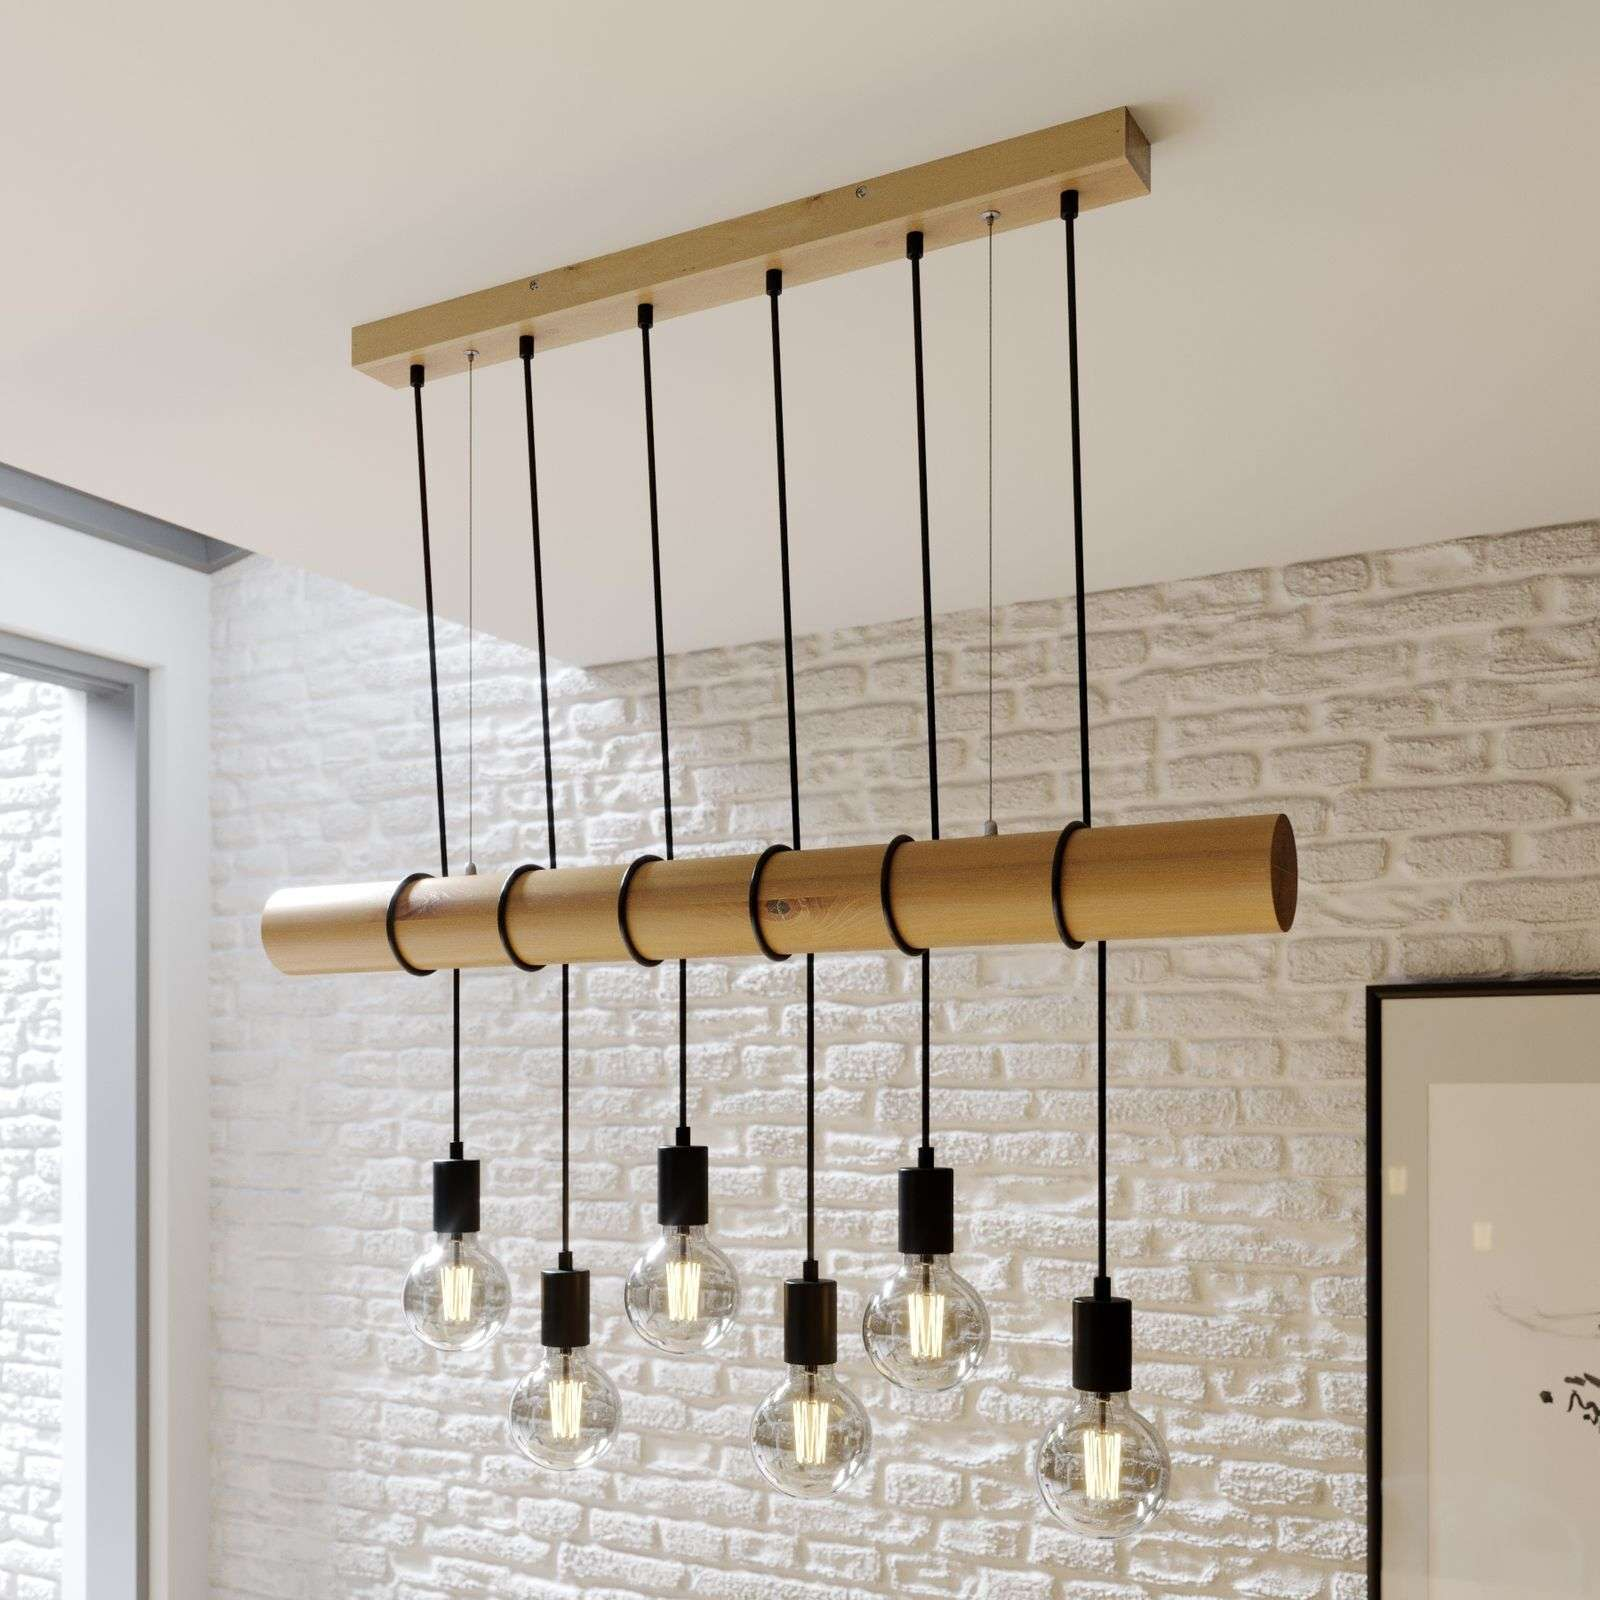 Suspension Eviton en bois, à 6 lampes naturel